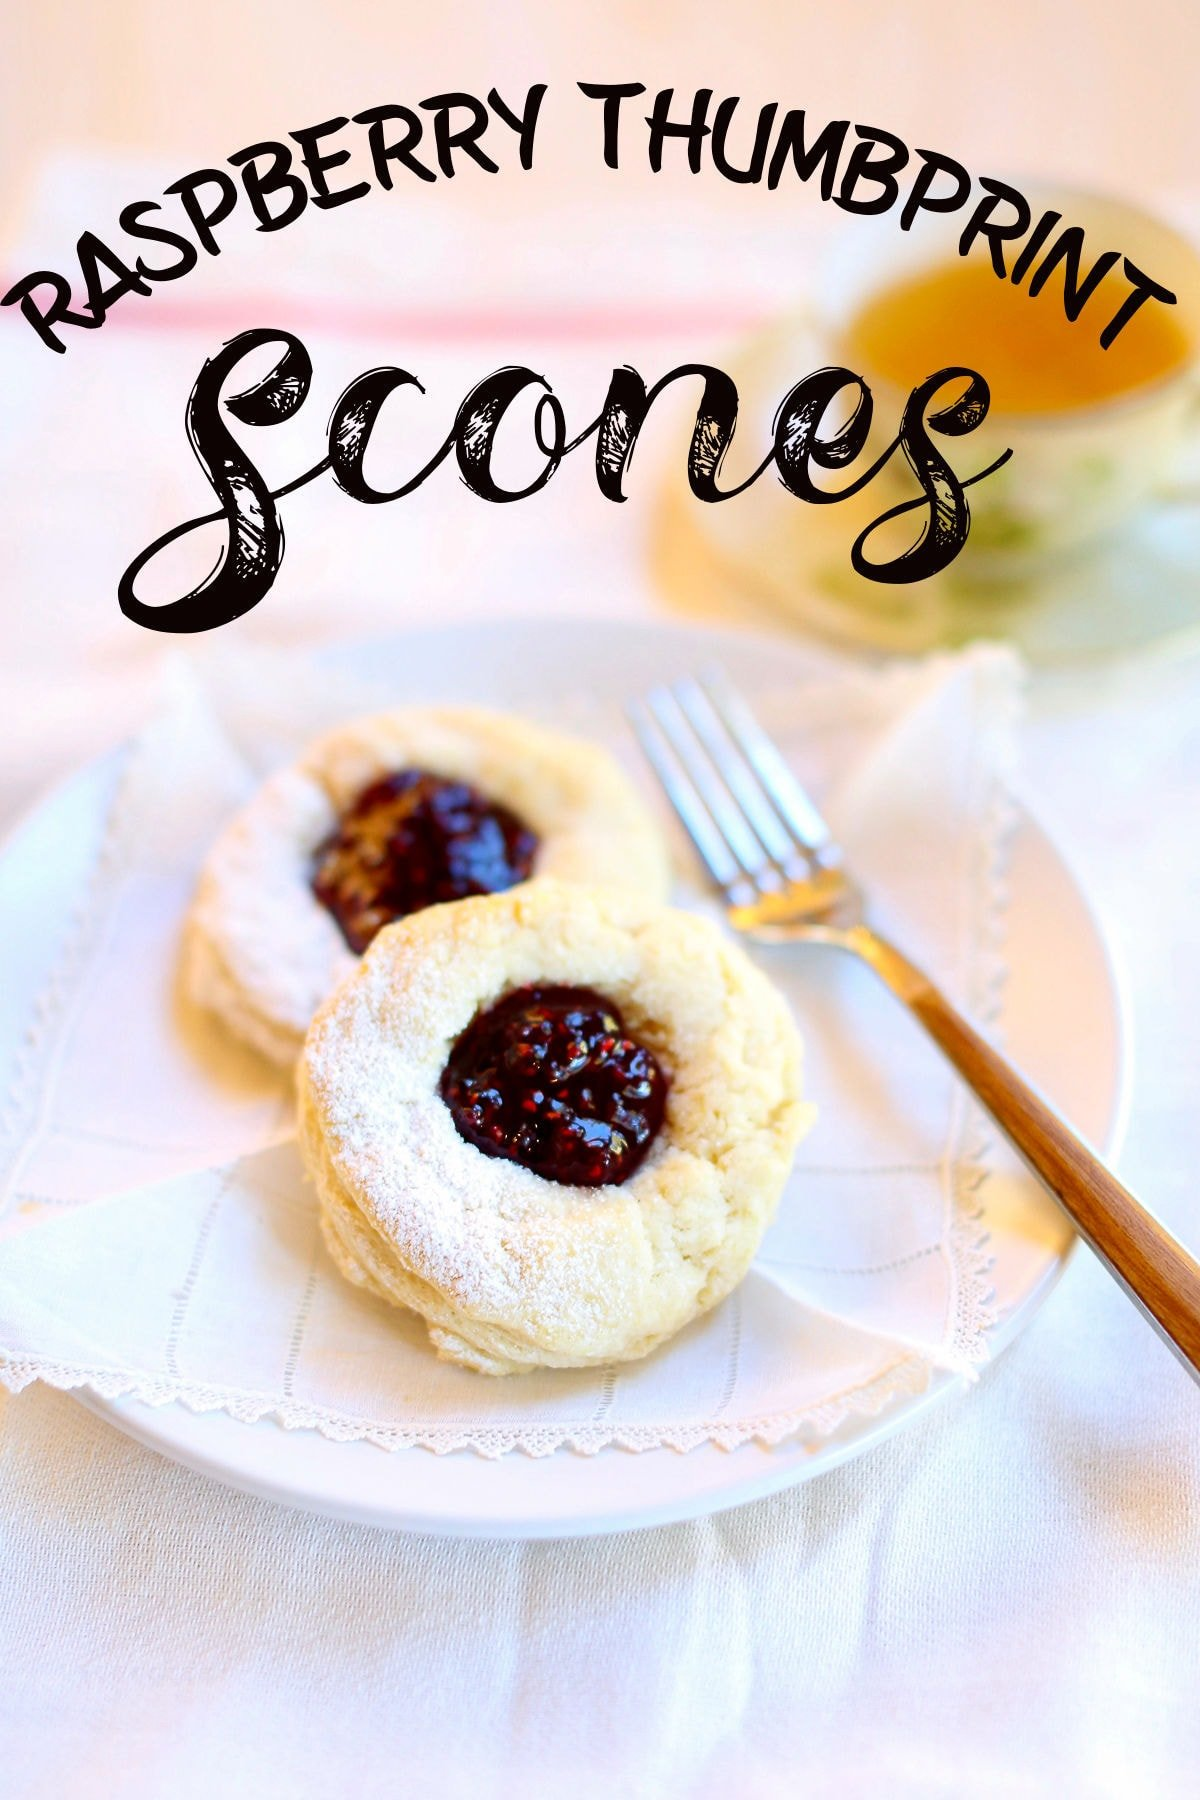 Two raspberry scones on a plate with a fork nearby.